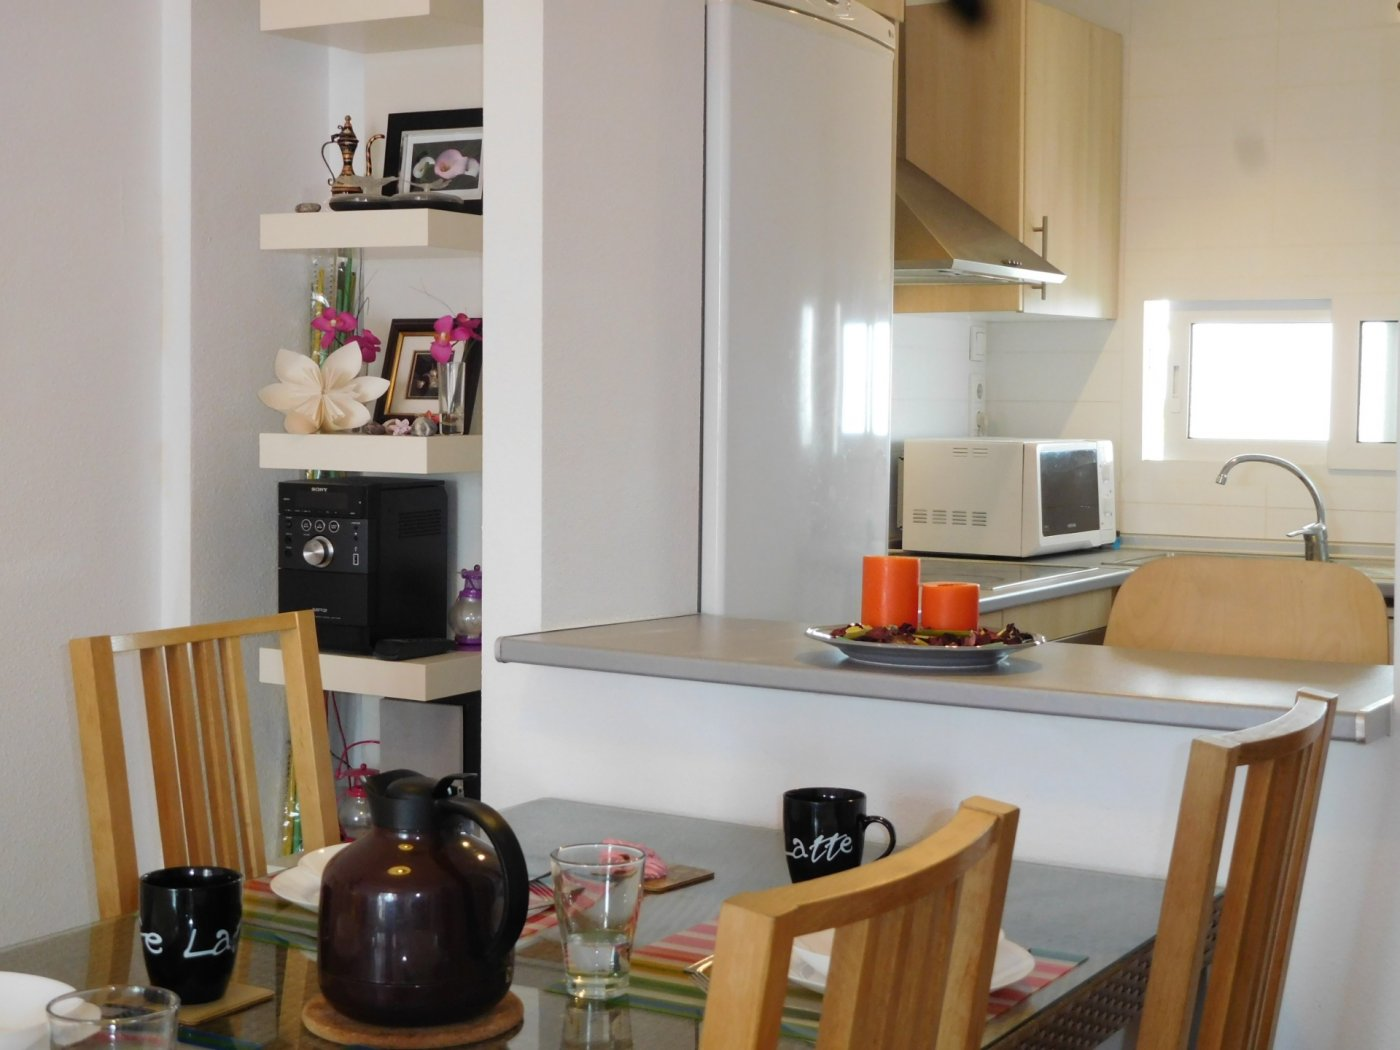 Gallery Image 4 of Apartment For rent in Condado De Alhama, Alhama De Murcia With Pool